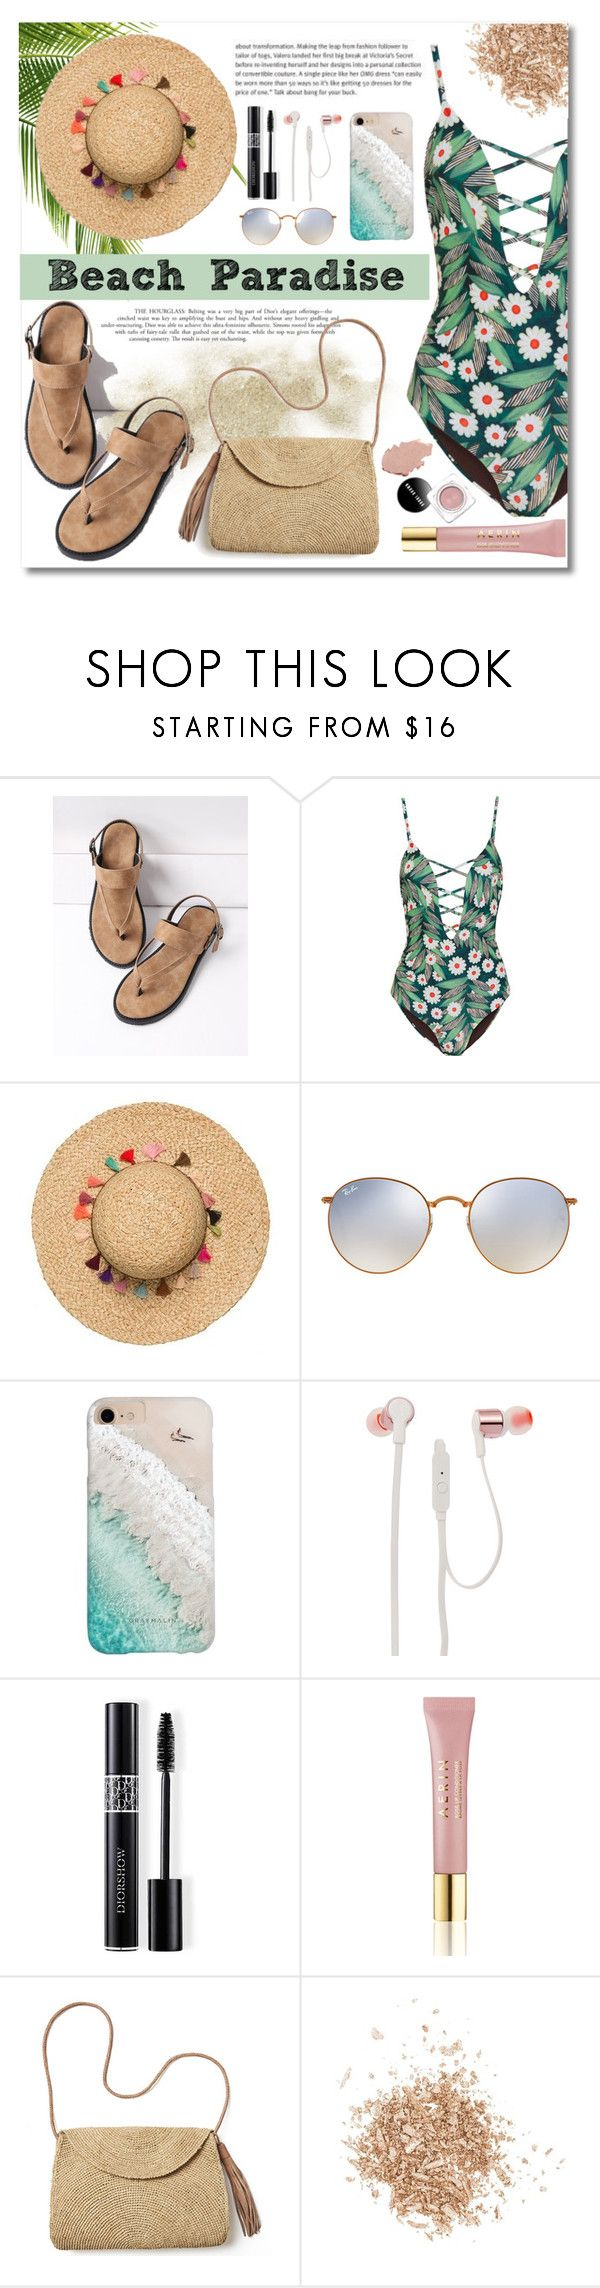 """Untitled #61"" by alyssa-1221 ❤ liked on Polyvore featuring Mara Hoffman, Ray-Ban, Gray Malin, JBL, Christian Dior, AERIN, Mar y Sol and Topshop"